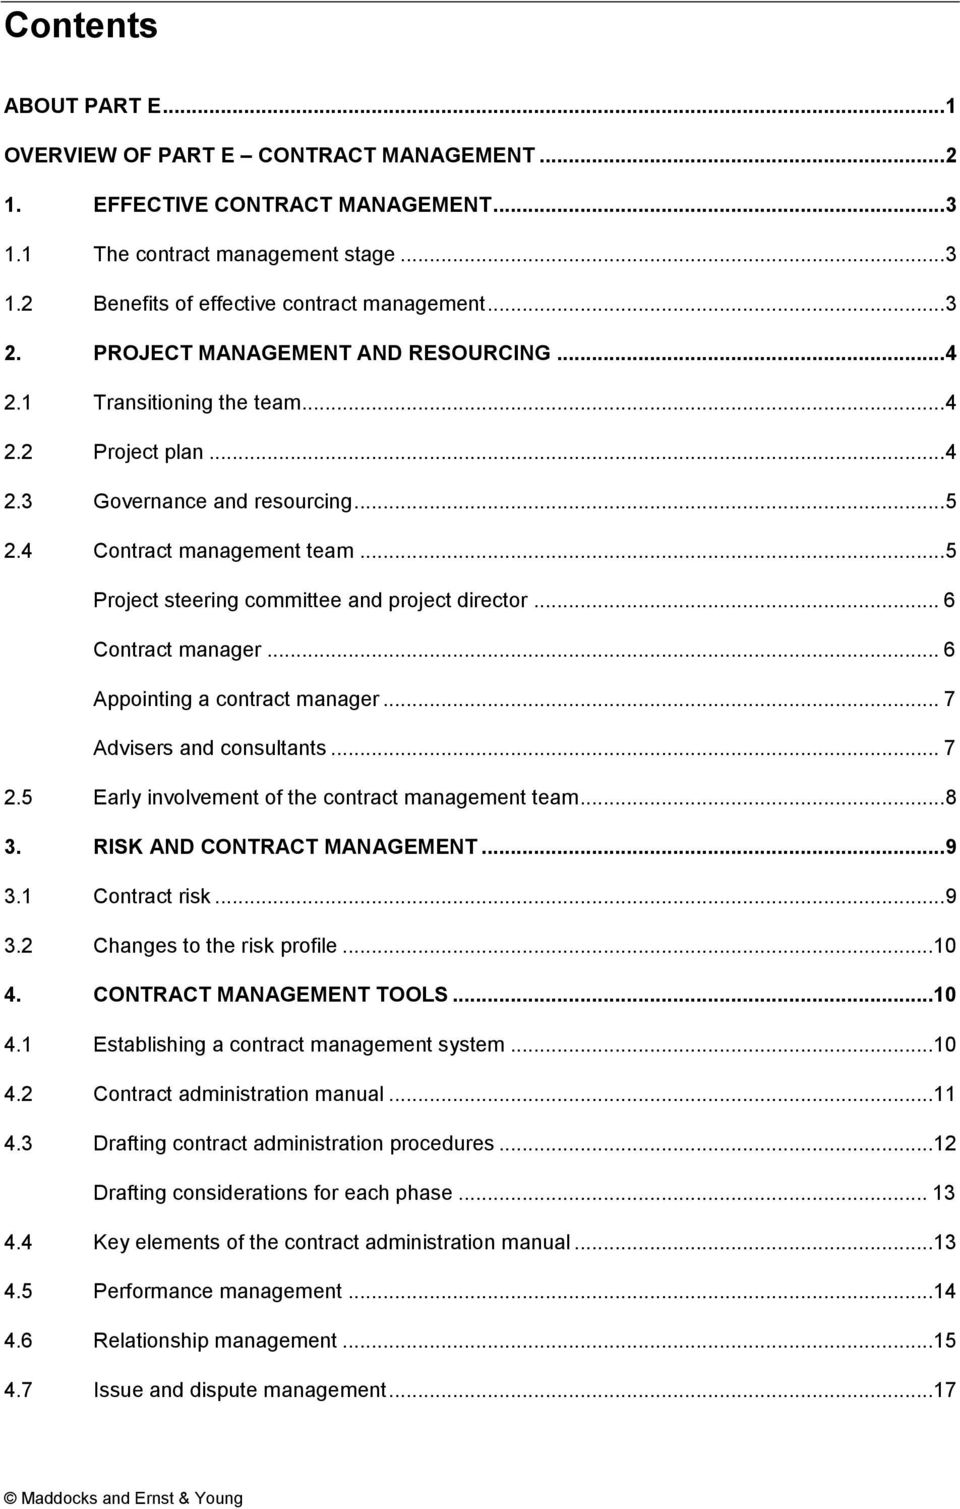 .. 5 Project steering committee and project director... 6 Contract manager... 6 Appointing a contract manager... 7 Advisers and consultants... 7 2.5 Early involvement of the contract management team.